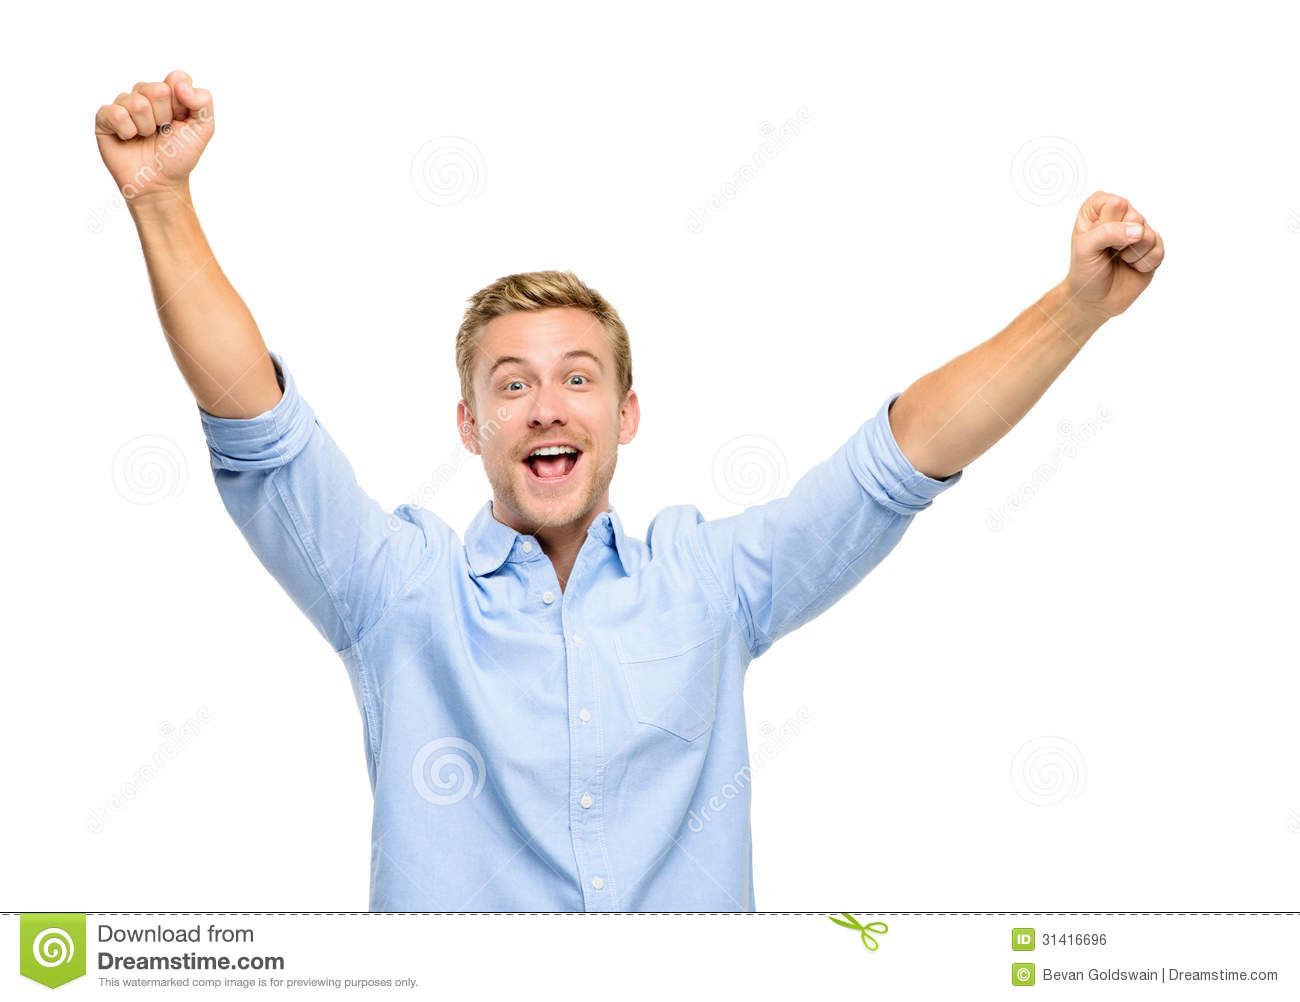 happy-young-man-celebrating-success-white-background-31416696.jpg